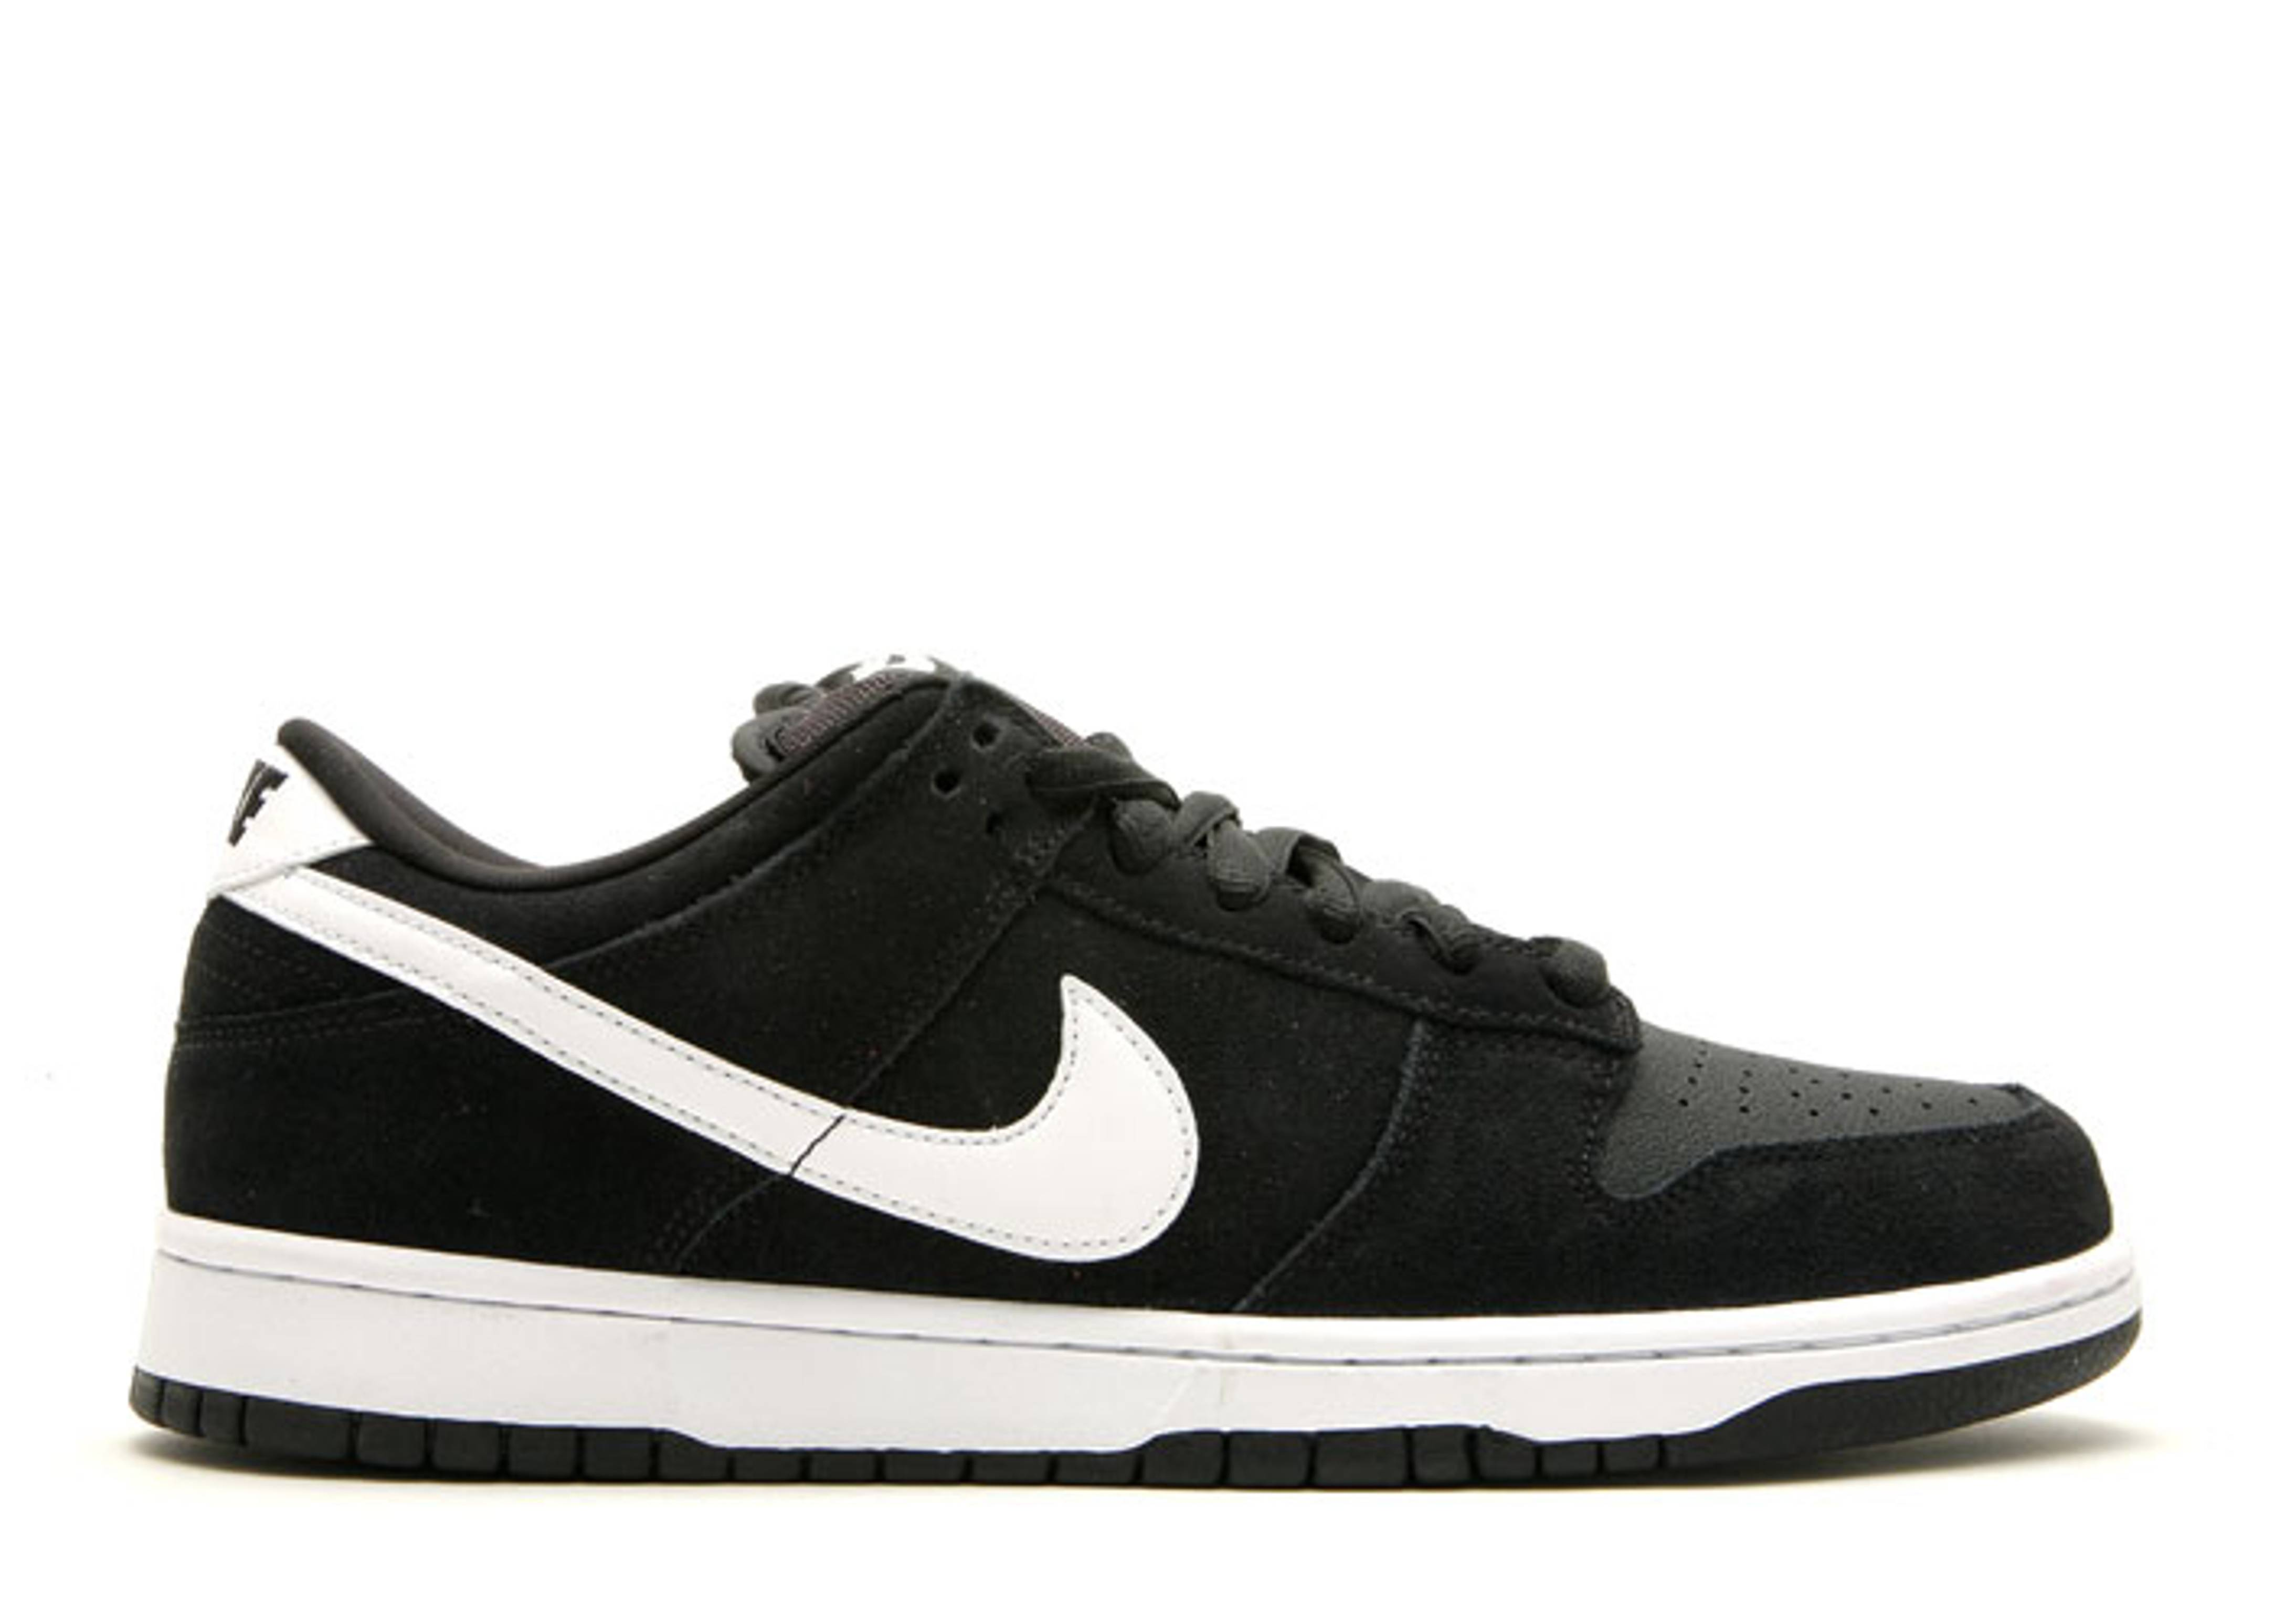 low cost nike sb dunk low pro black and white d57be 97a4b 92fc1056d